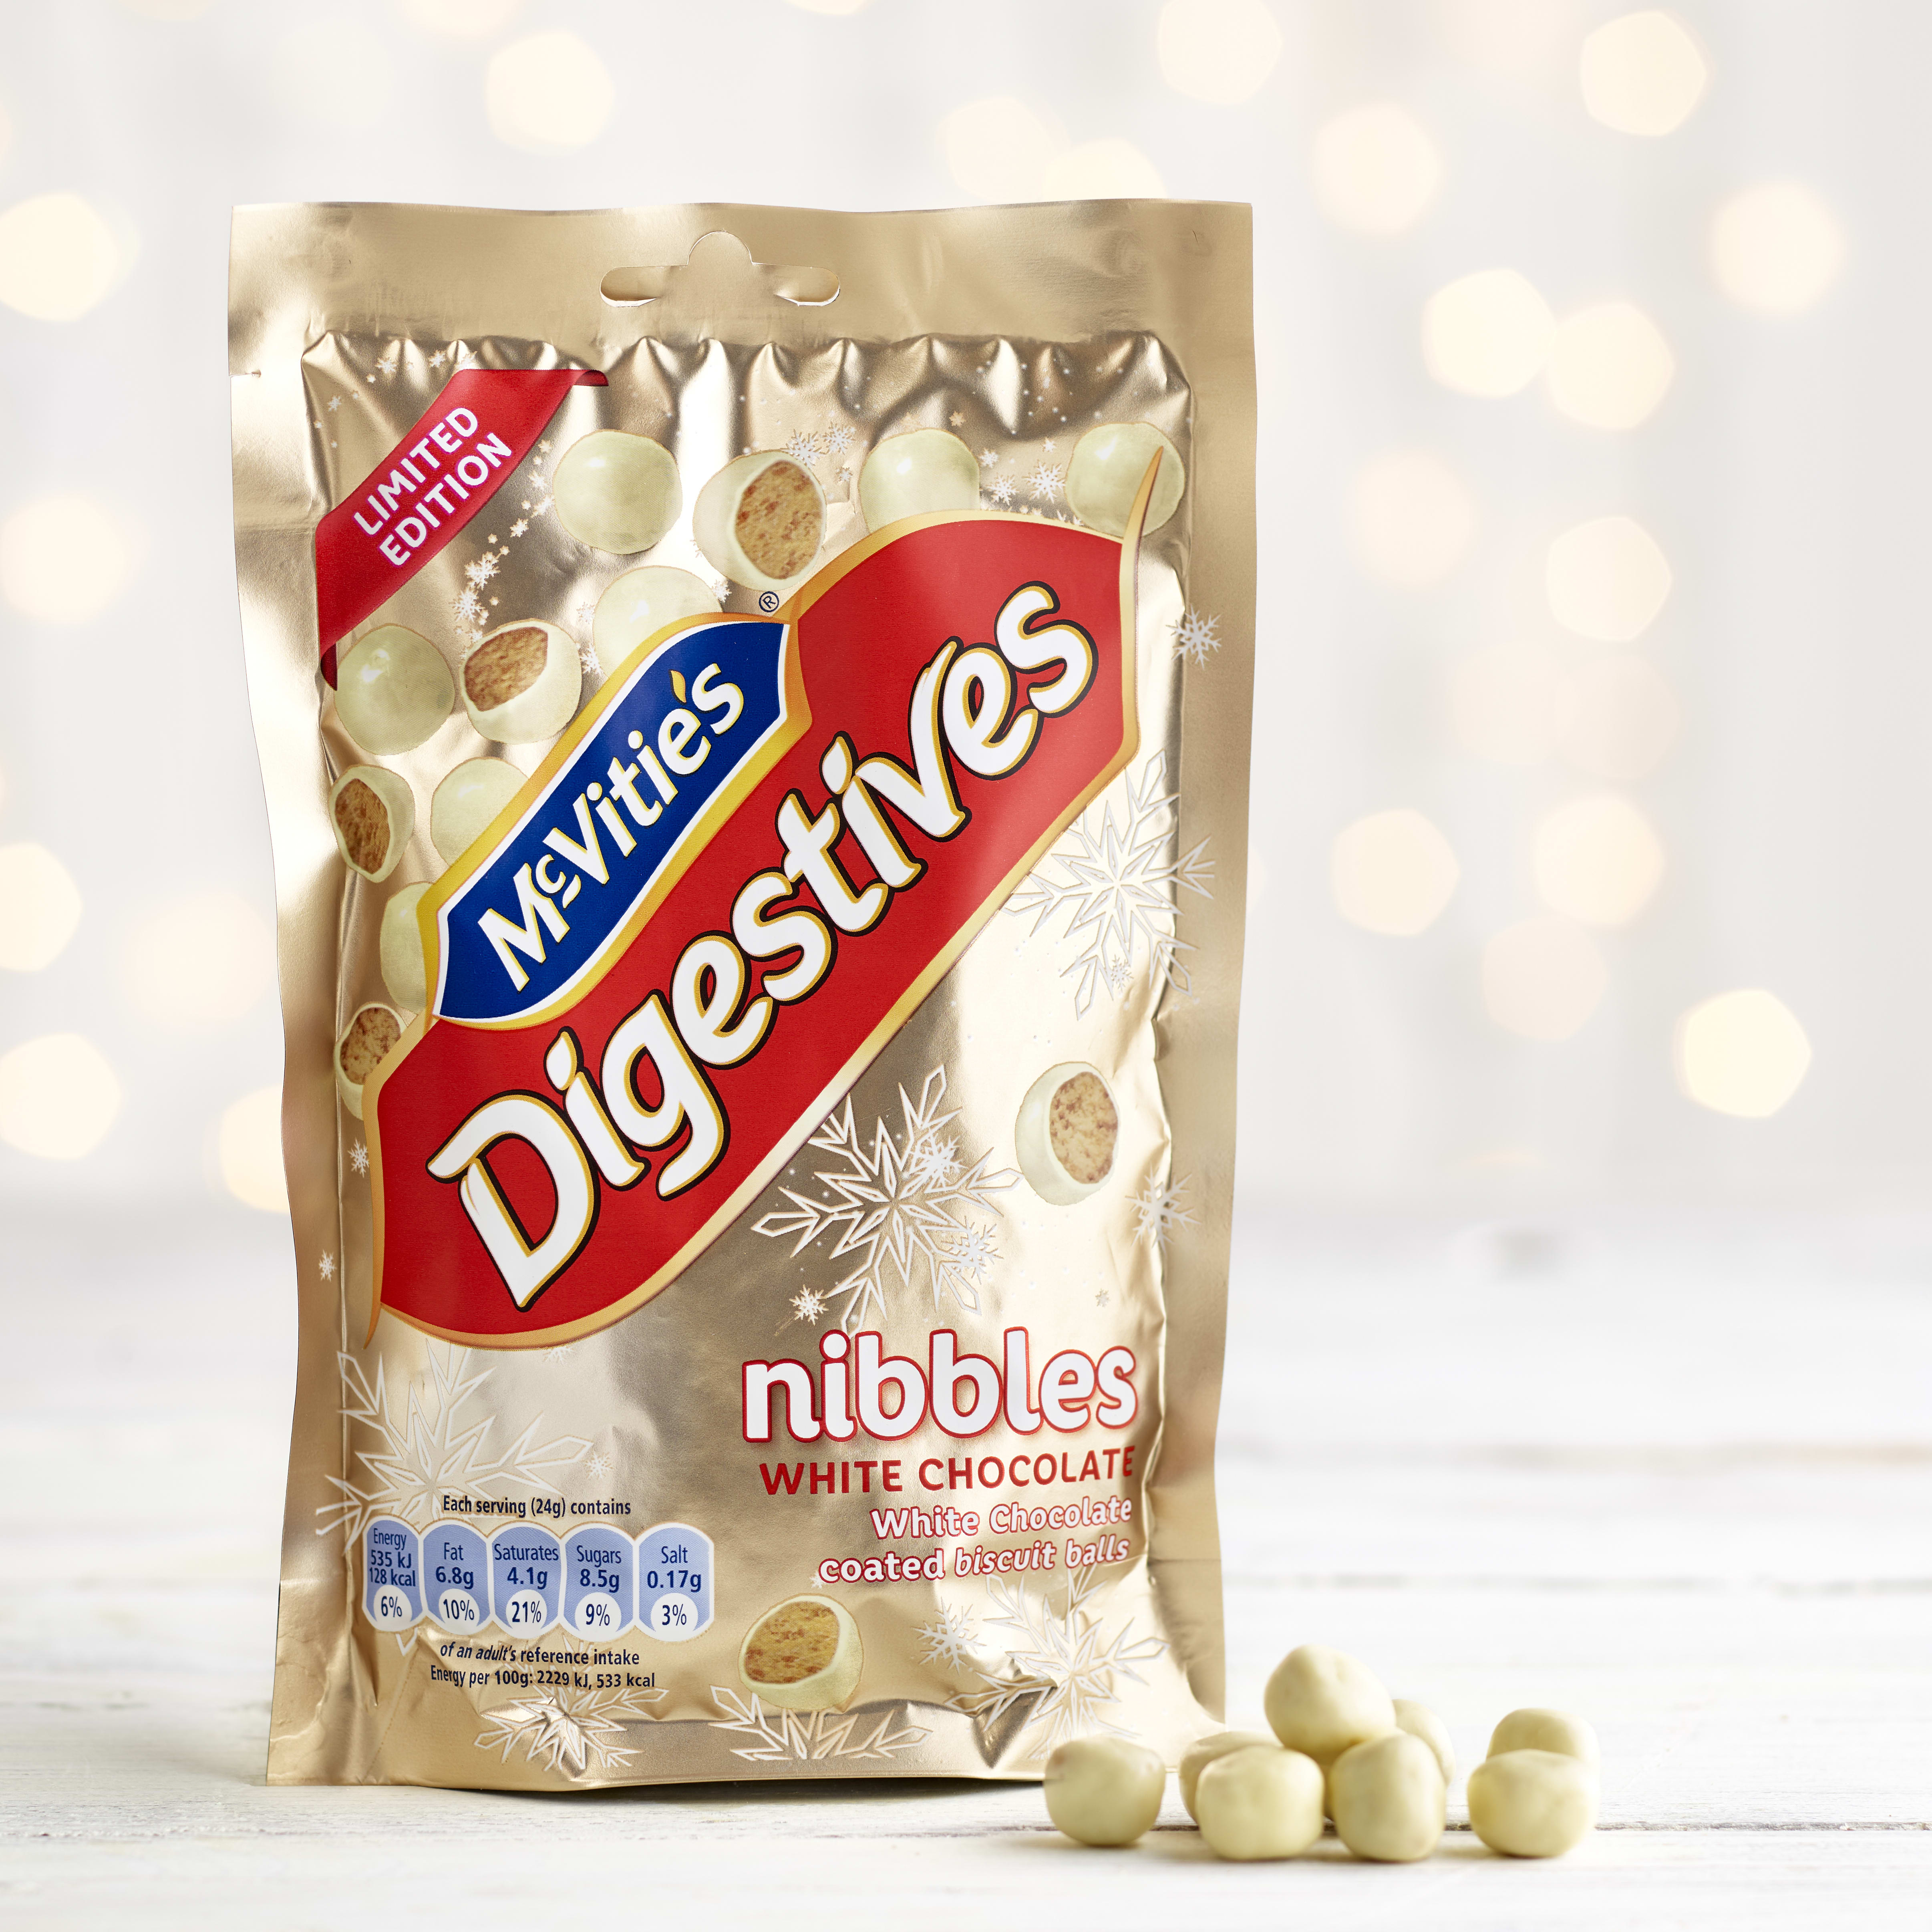 McVitie's White Chocolate Digestives Nibbles 120g